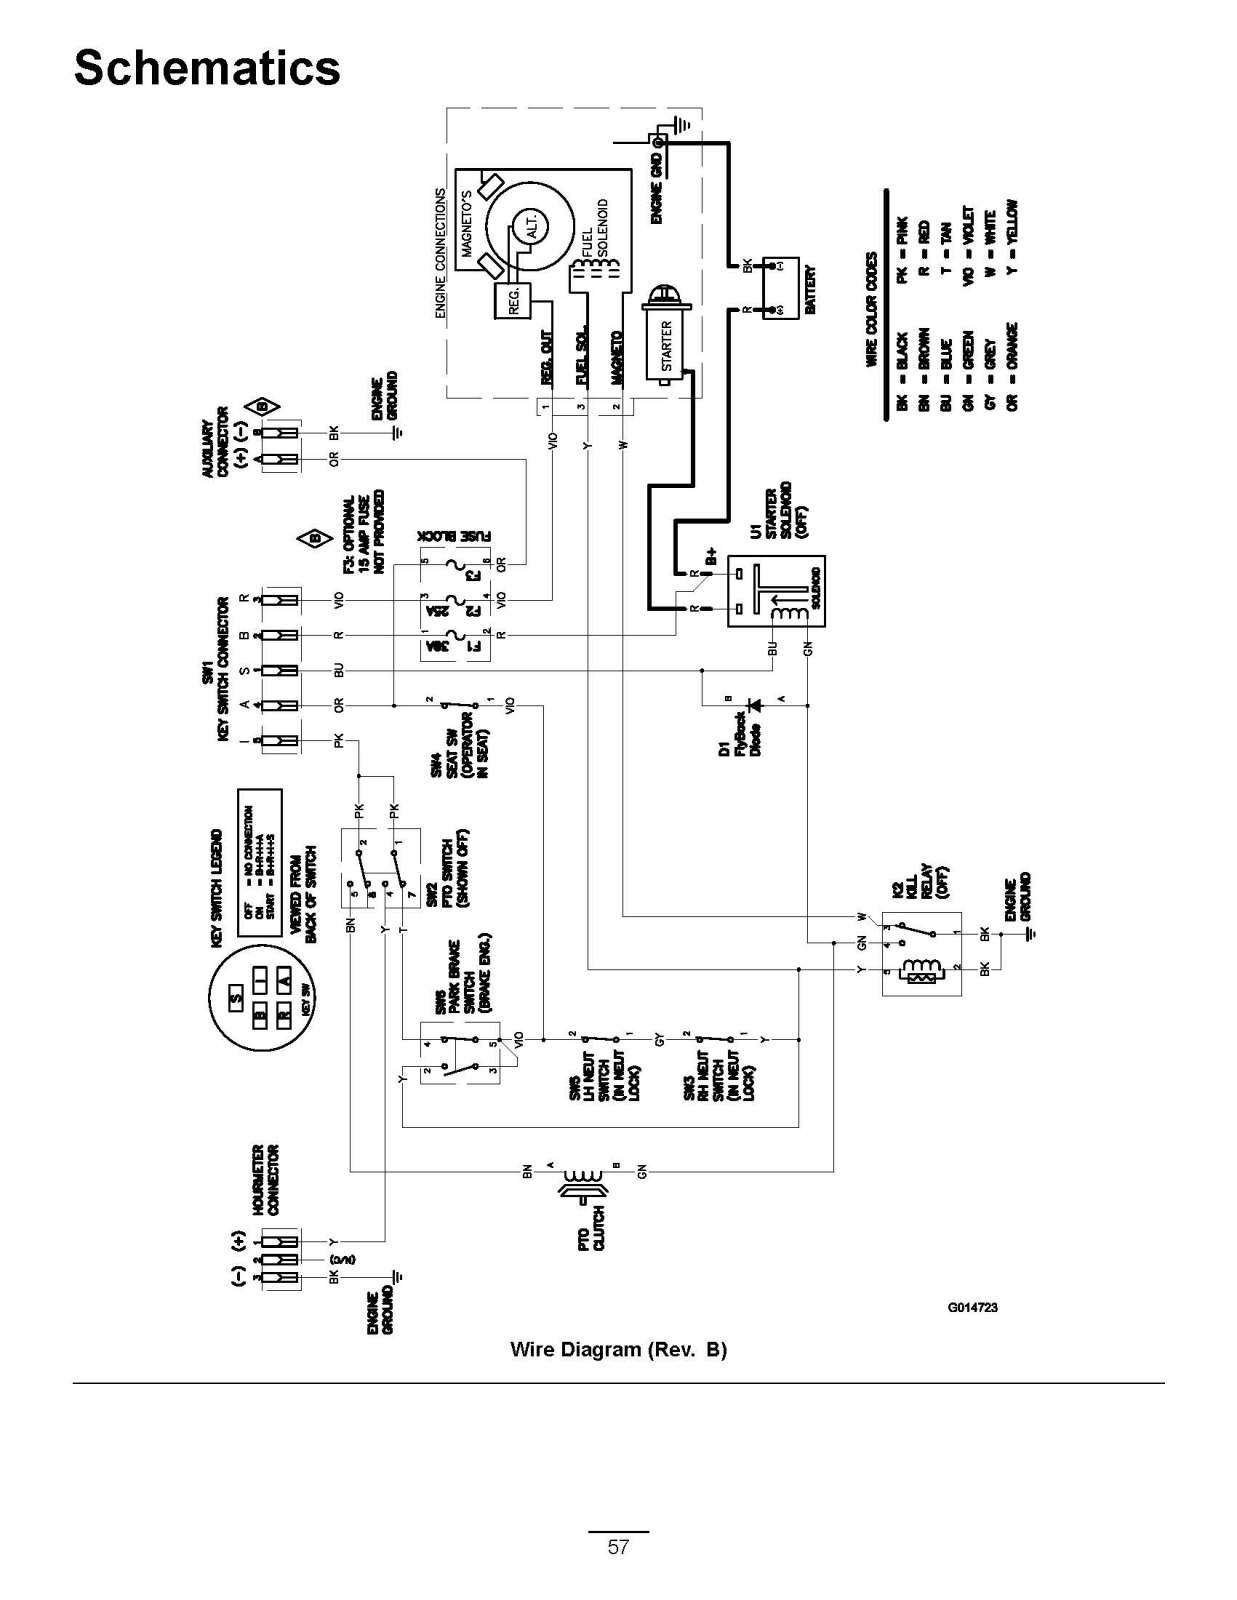 Bobcat Zero Turn Wiring Diagram Just Another Blog 763 Toro Vt4 Satellite Detailed Rh 9 2 Gastspiel Gerhartz De